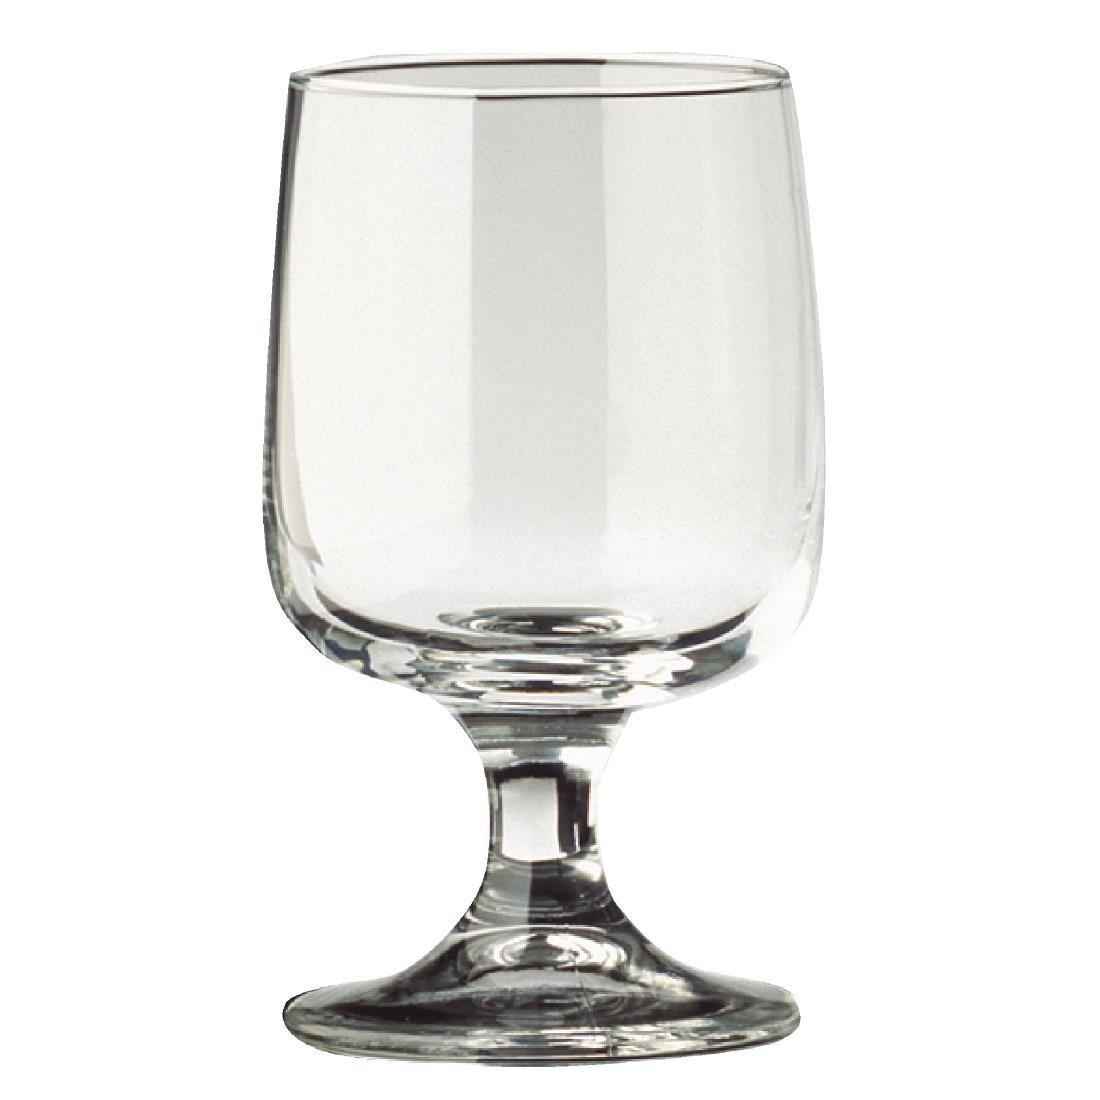 Y710 - Executive Stemmed Beer Glass